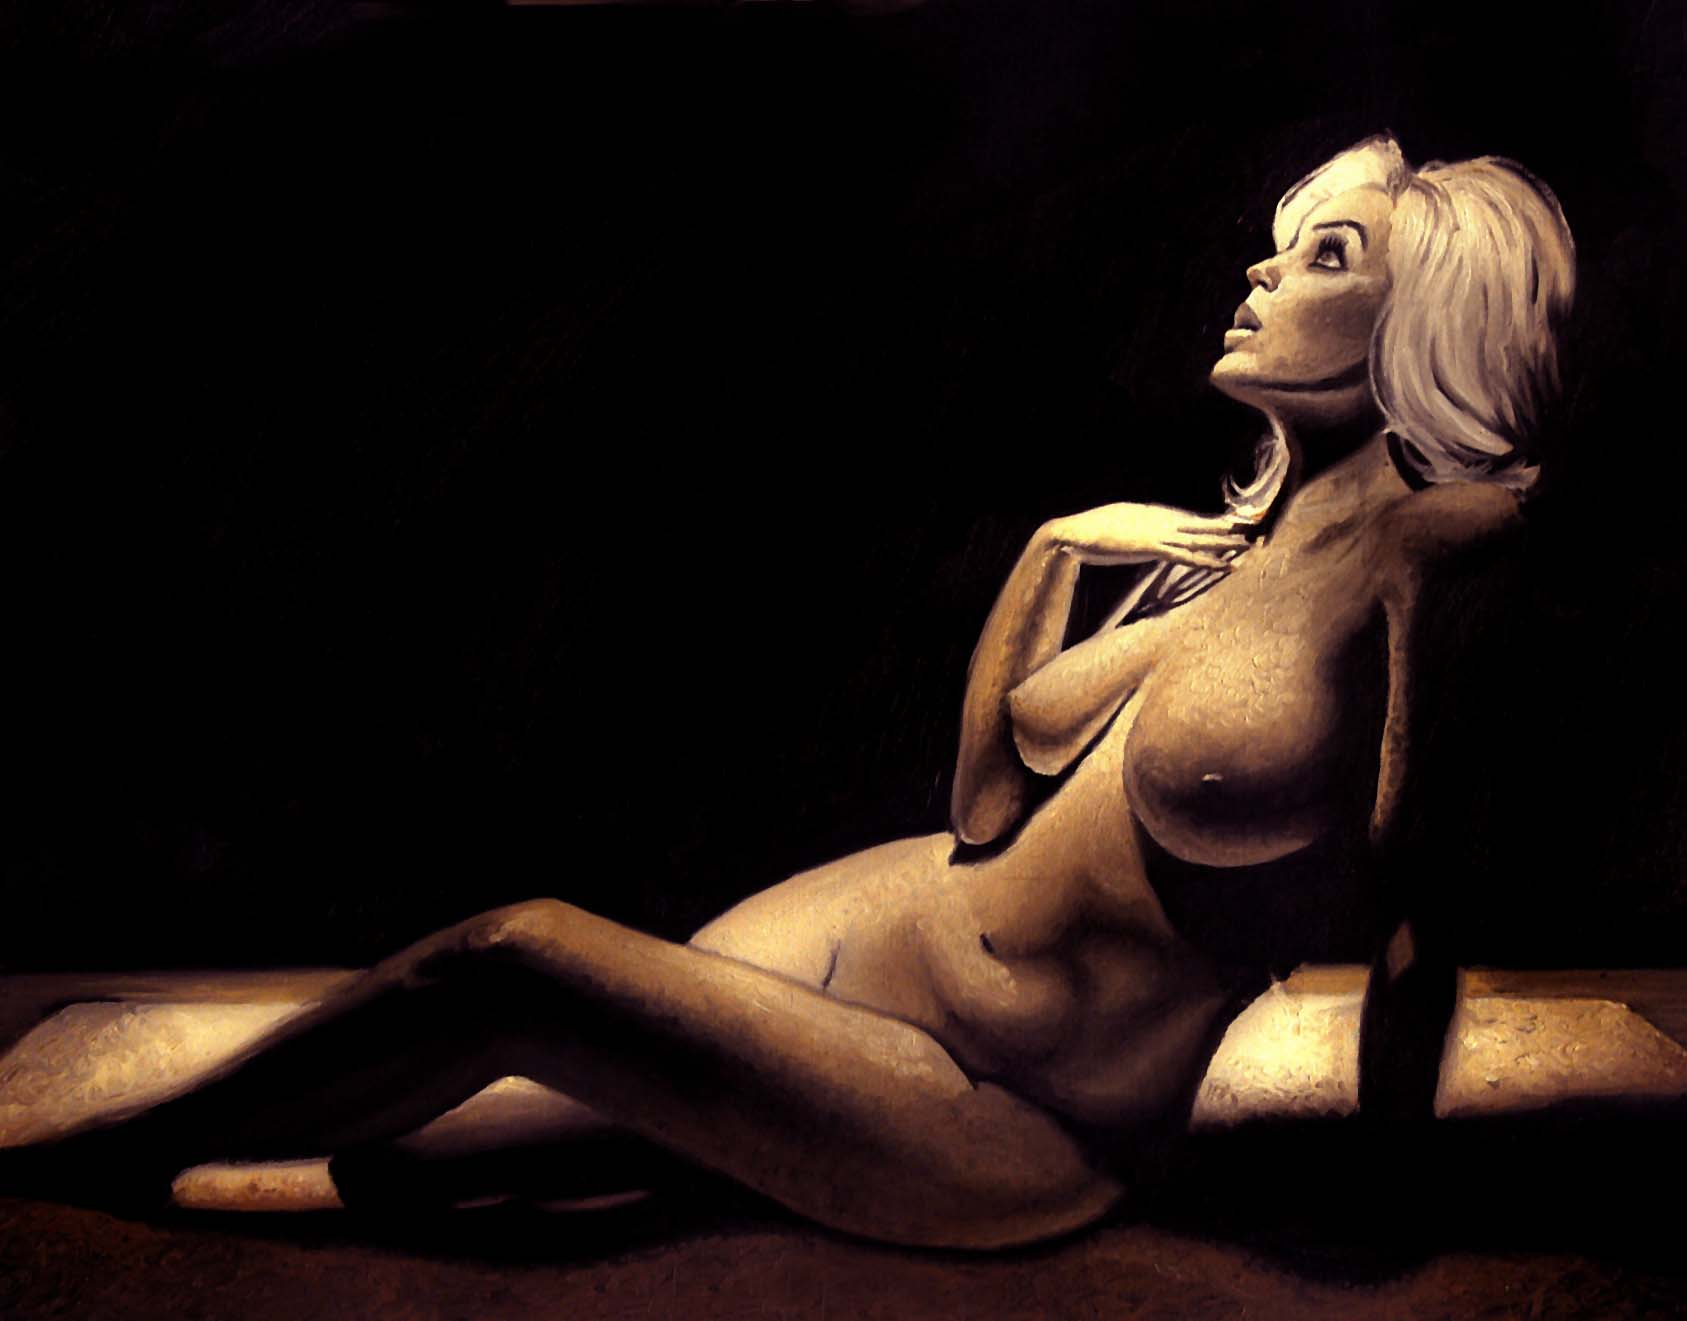 Reclining lady in sepia